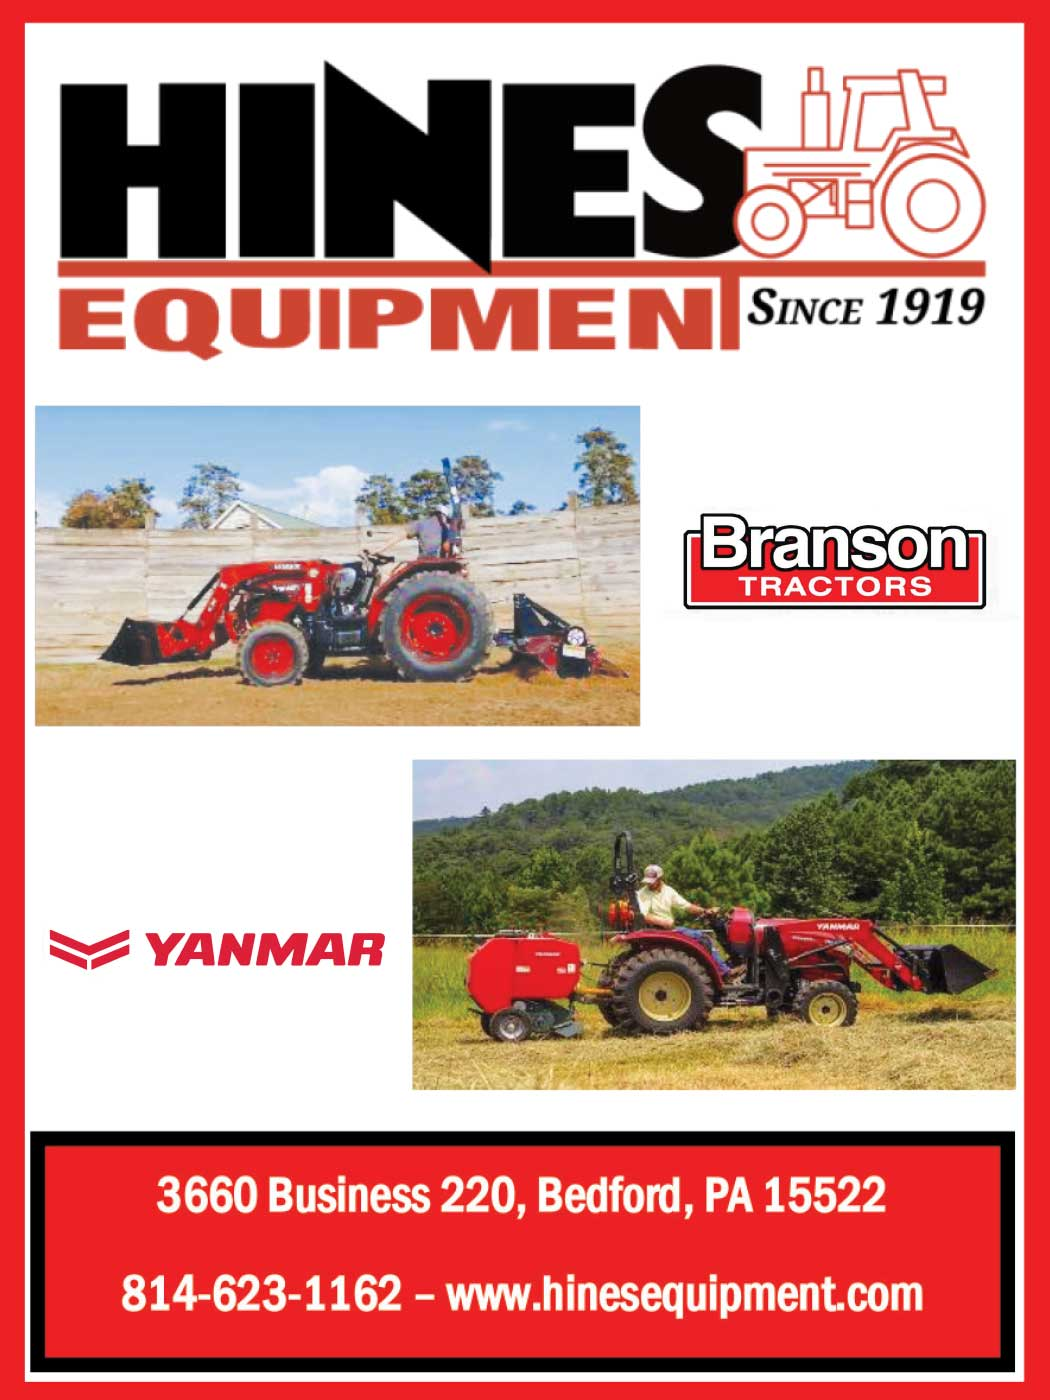 """<center>Hines Equipment   <b><a href=""""https://www.hinesequipment.com"""" target=""""_blank"""" rel=""""noopener noreferrer"""">CLICK HERE to view the website</a></b></center>"""